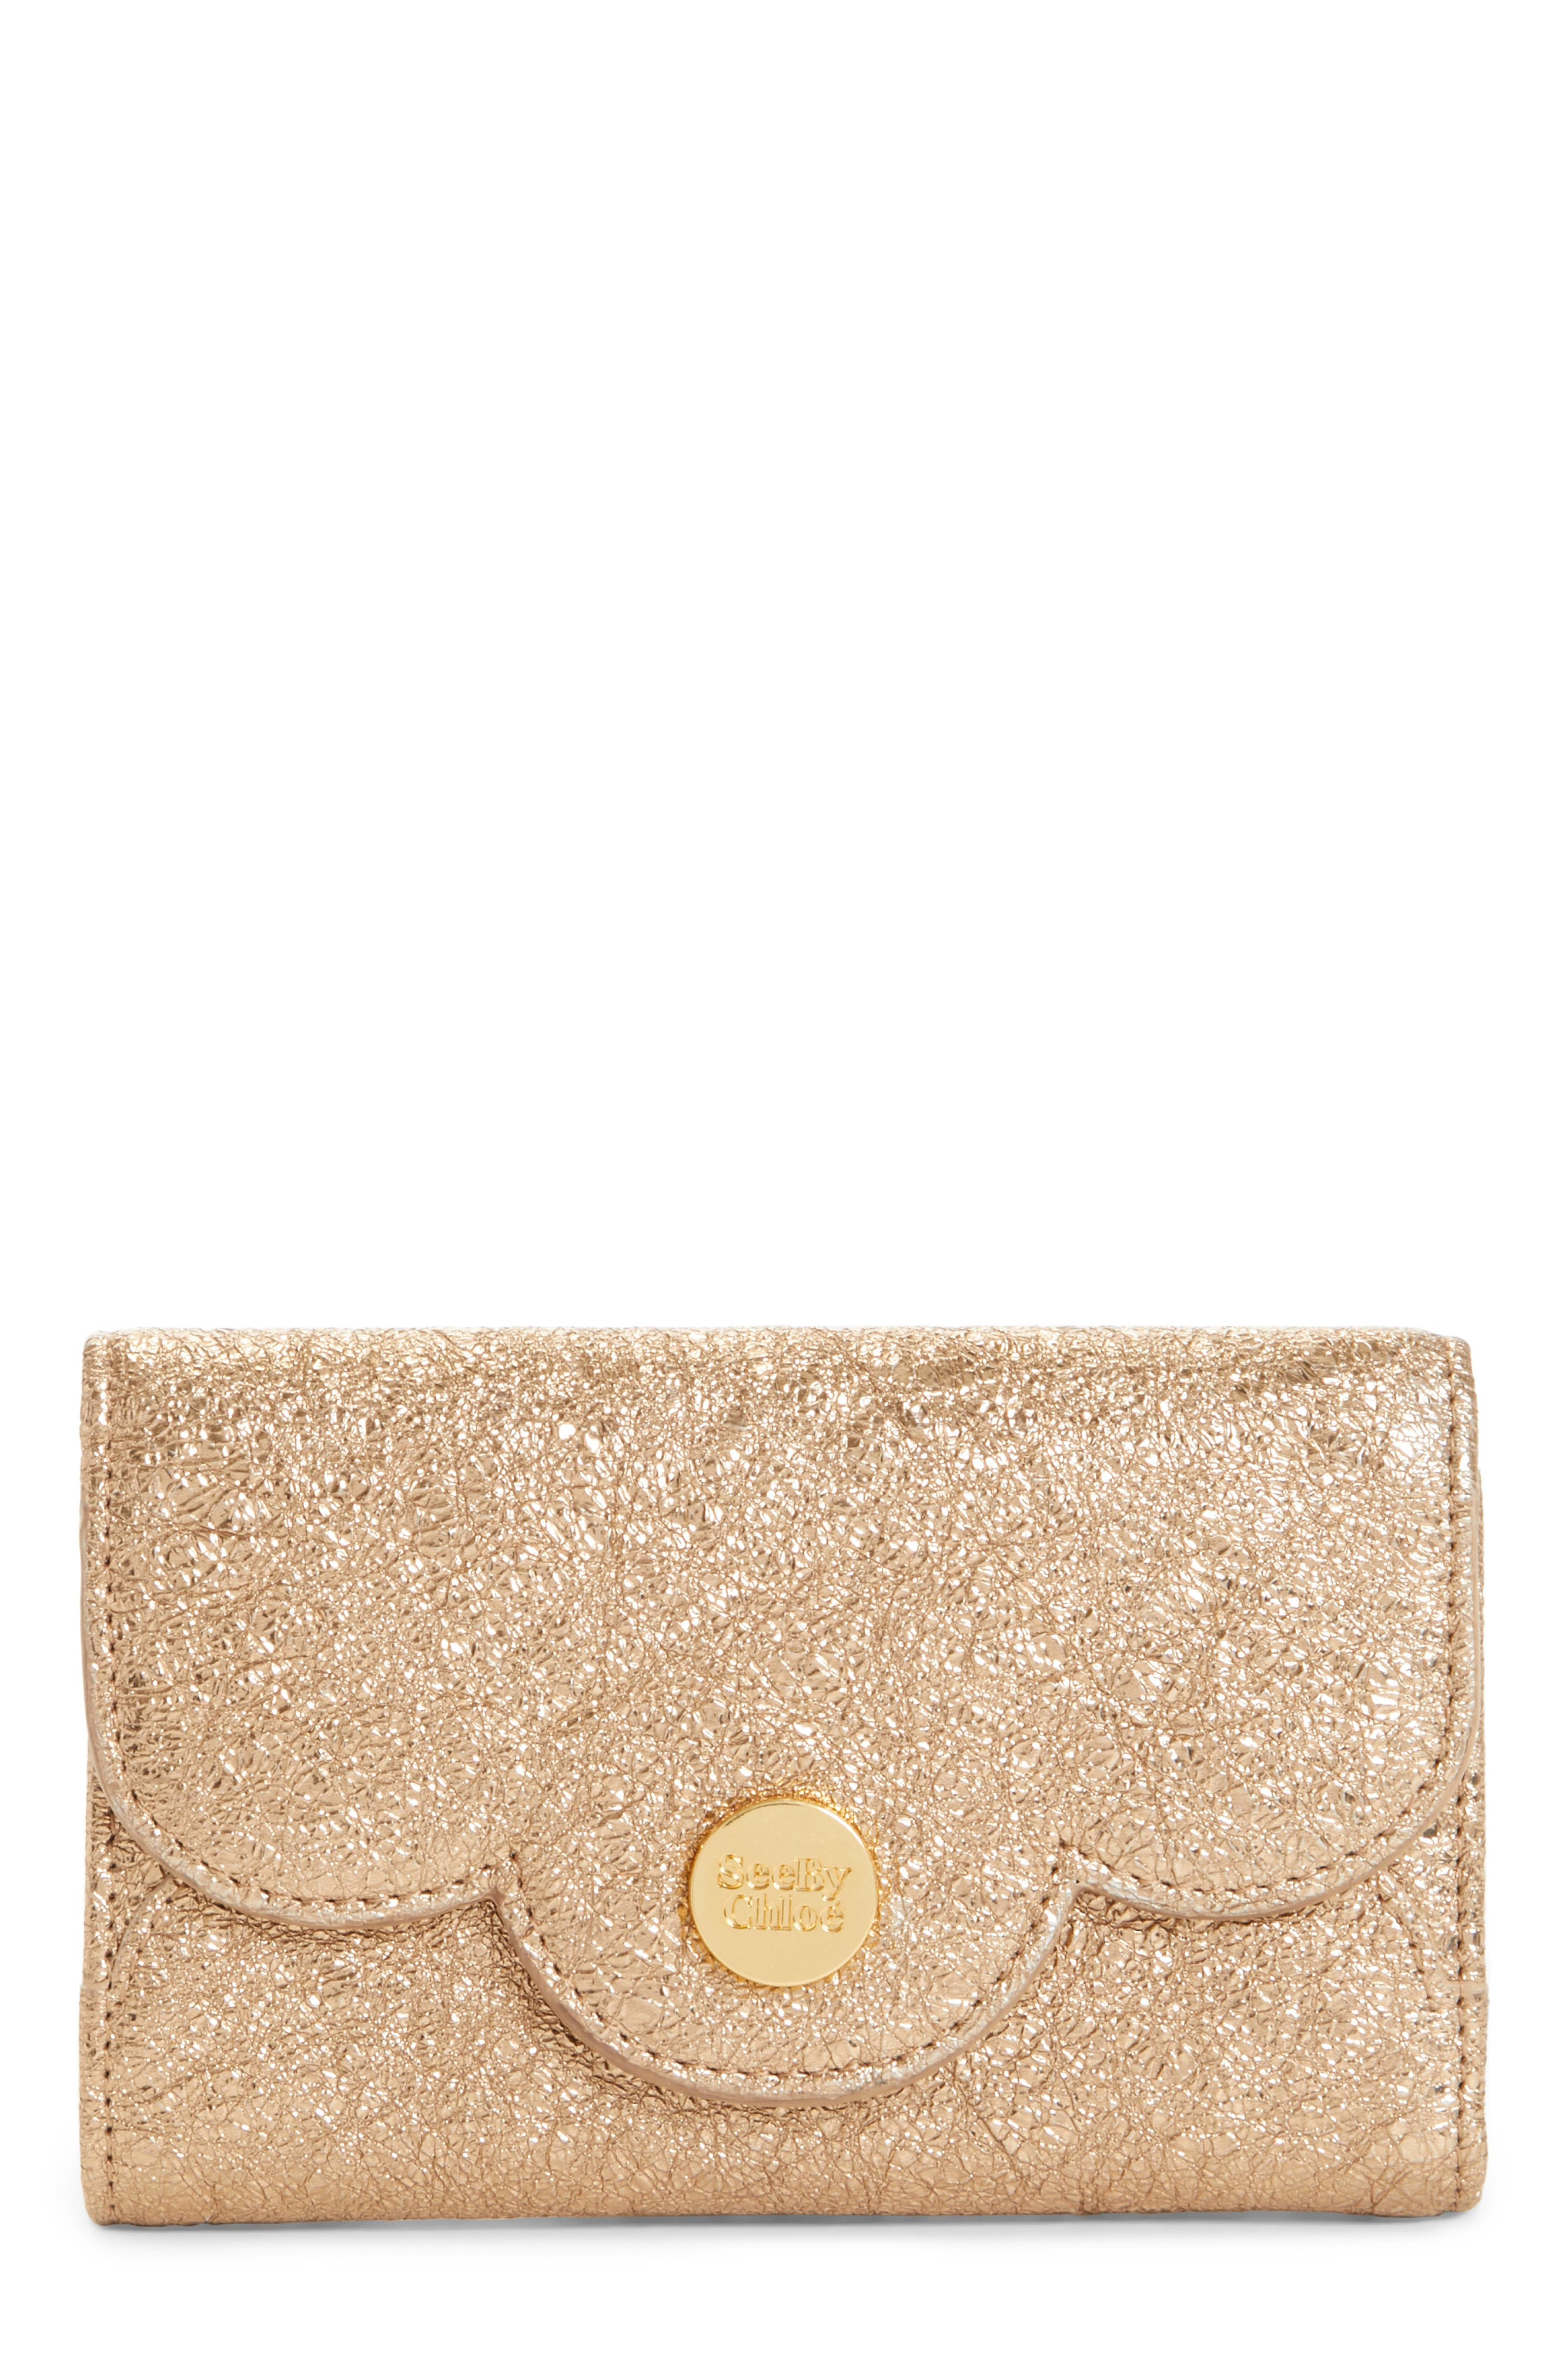 See by Chloé Polina Metallic Leather Mini Wallet